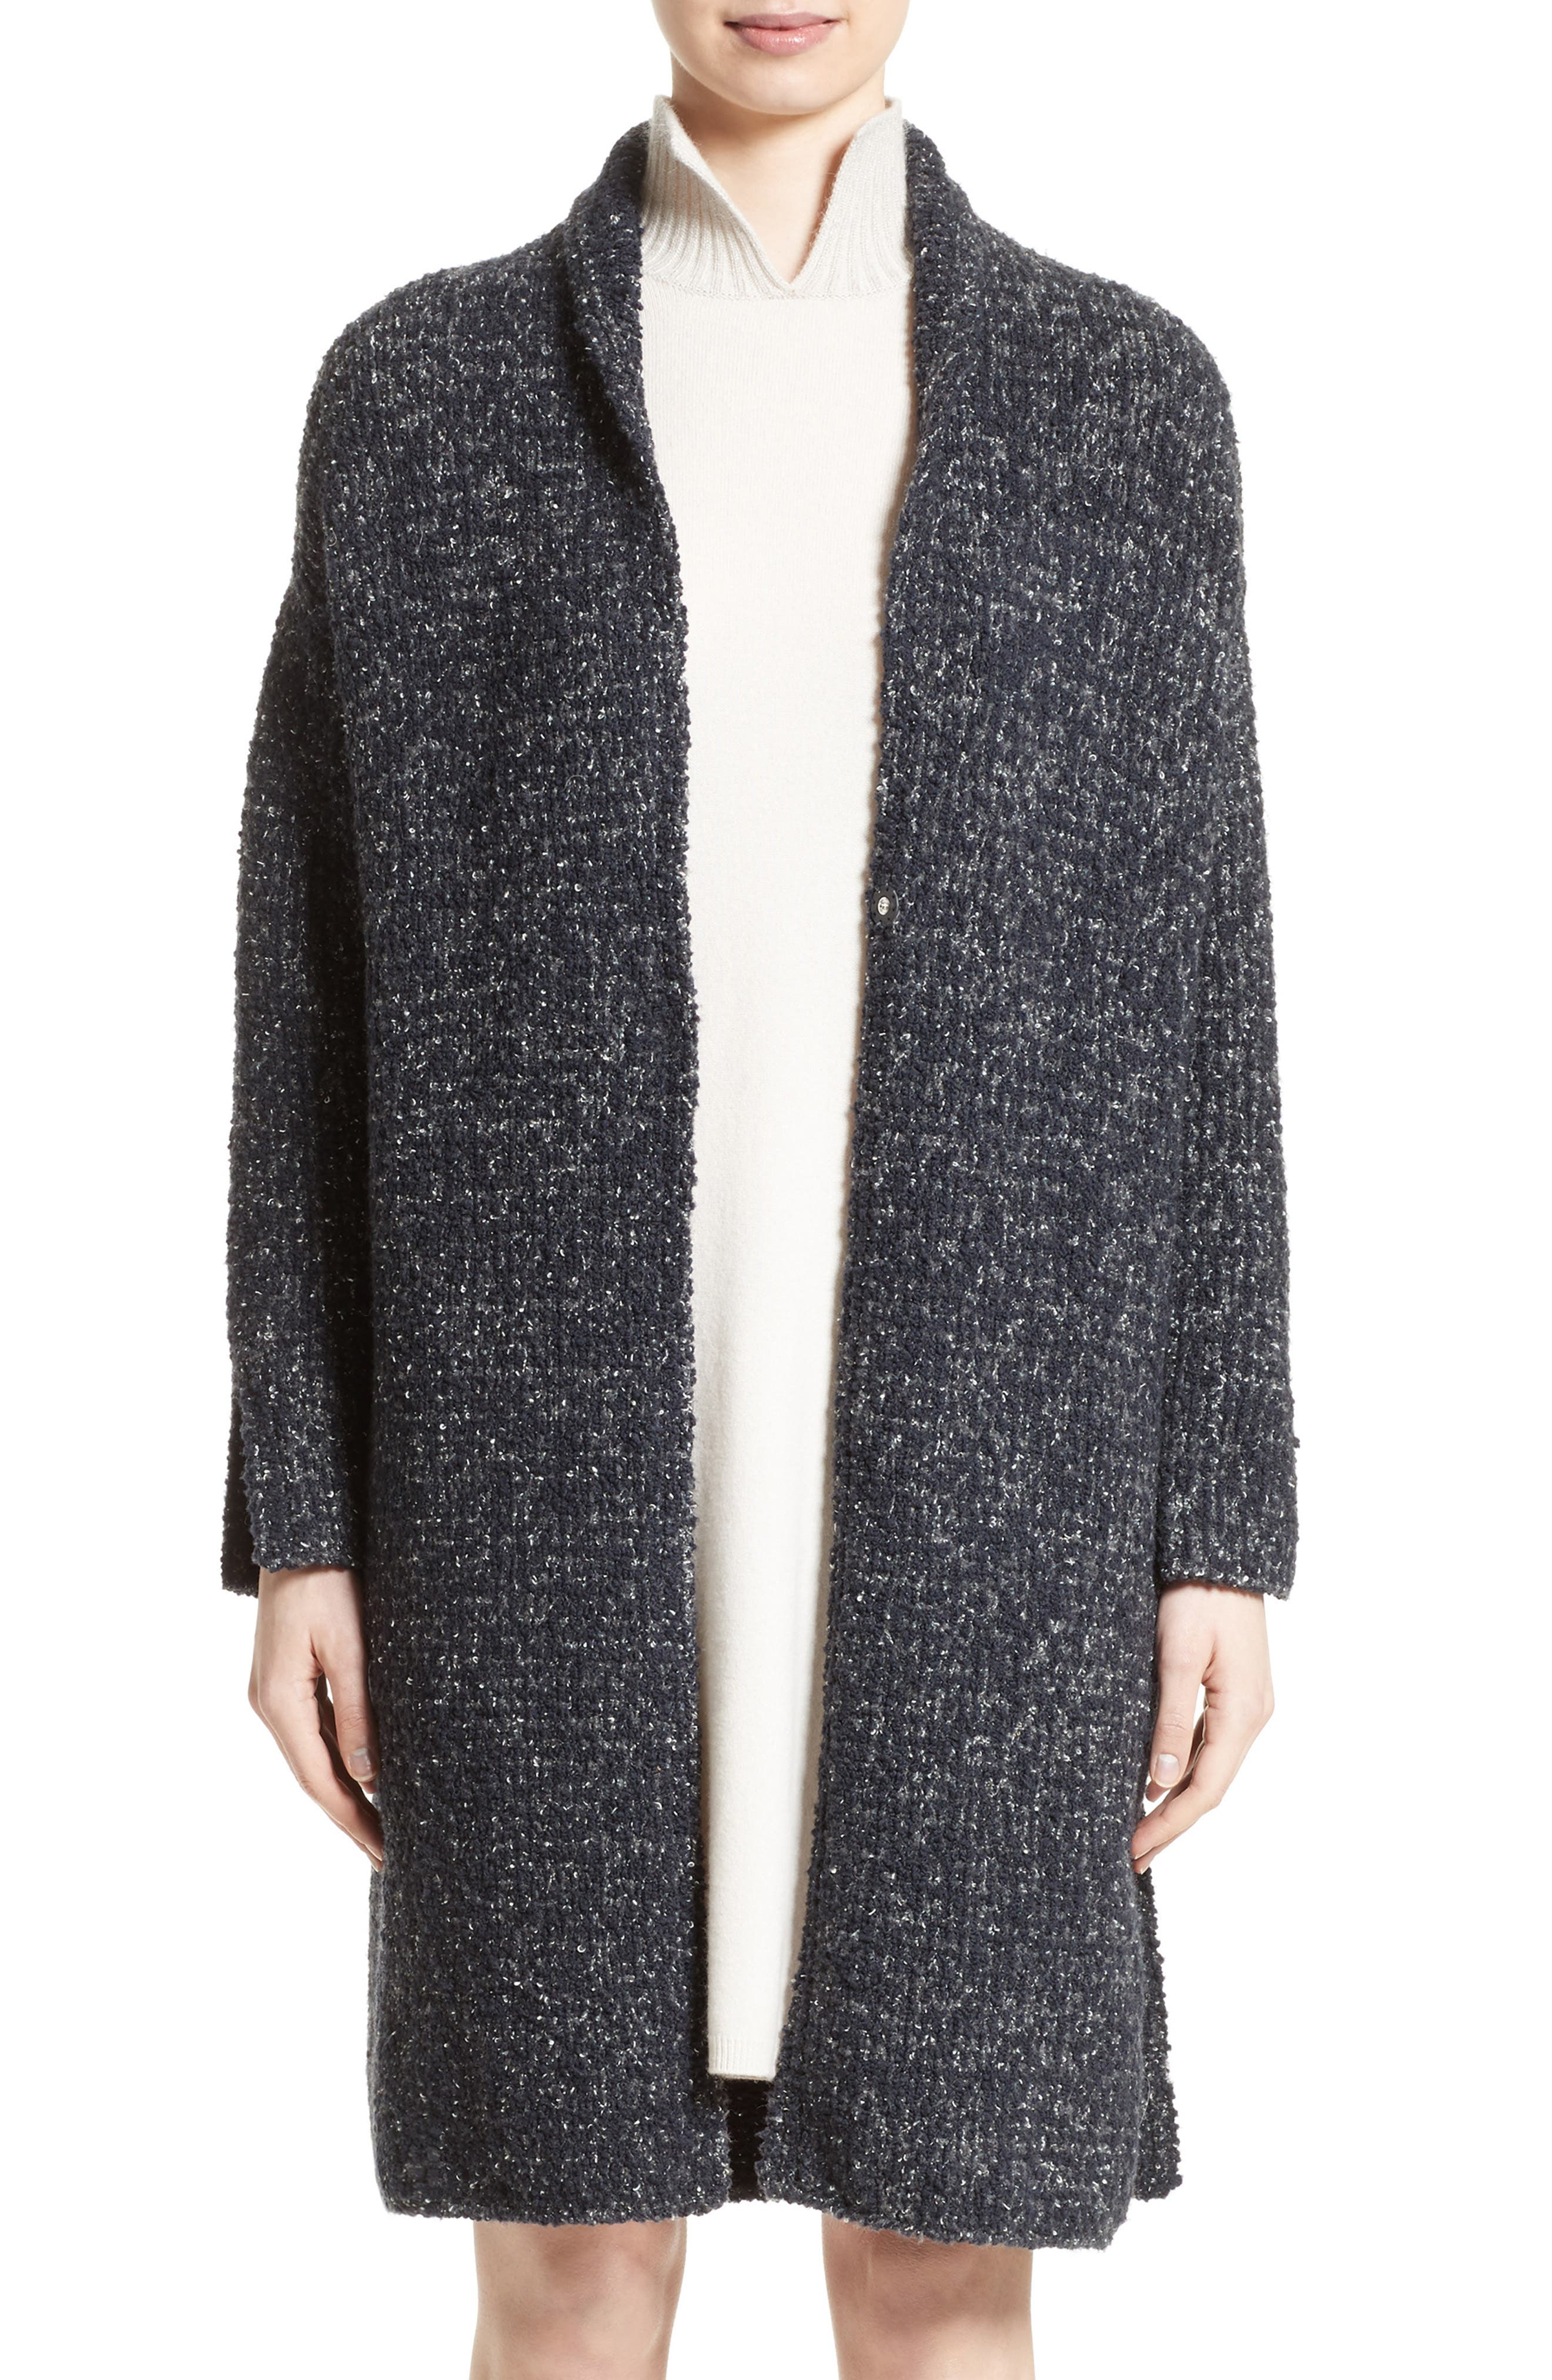 Fabiana Filippi Wool Blend Bouclé Long Cardigan